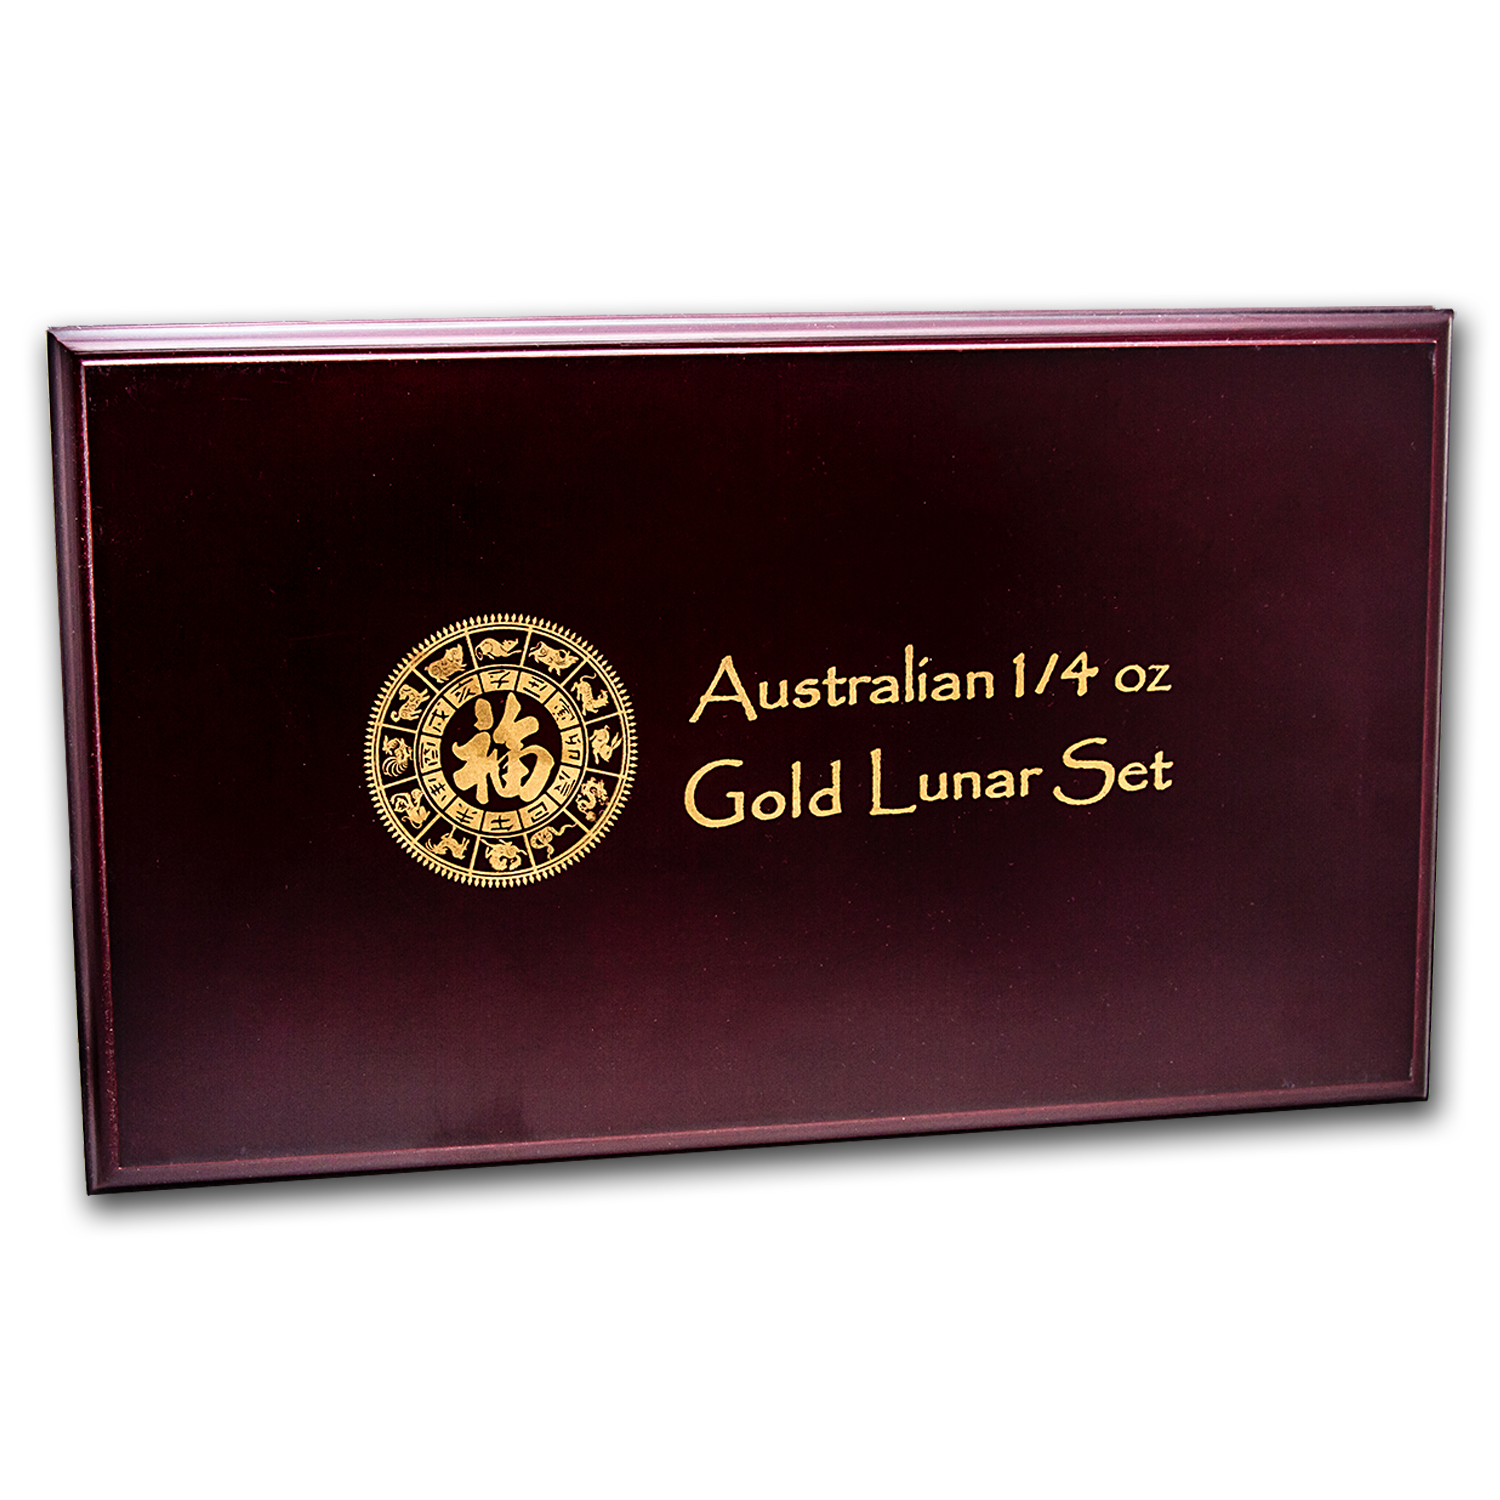 Lunar Series I (1/4 oz Gold) 12 Coin Wood Presentation Box